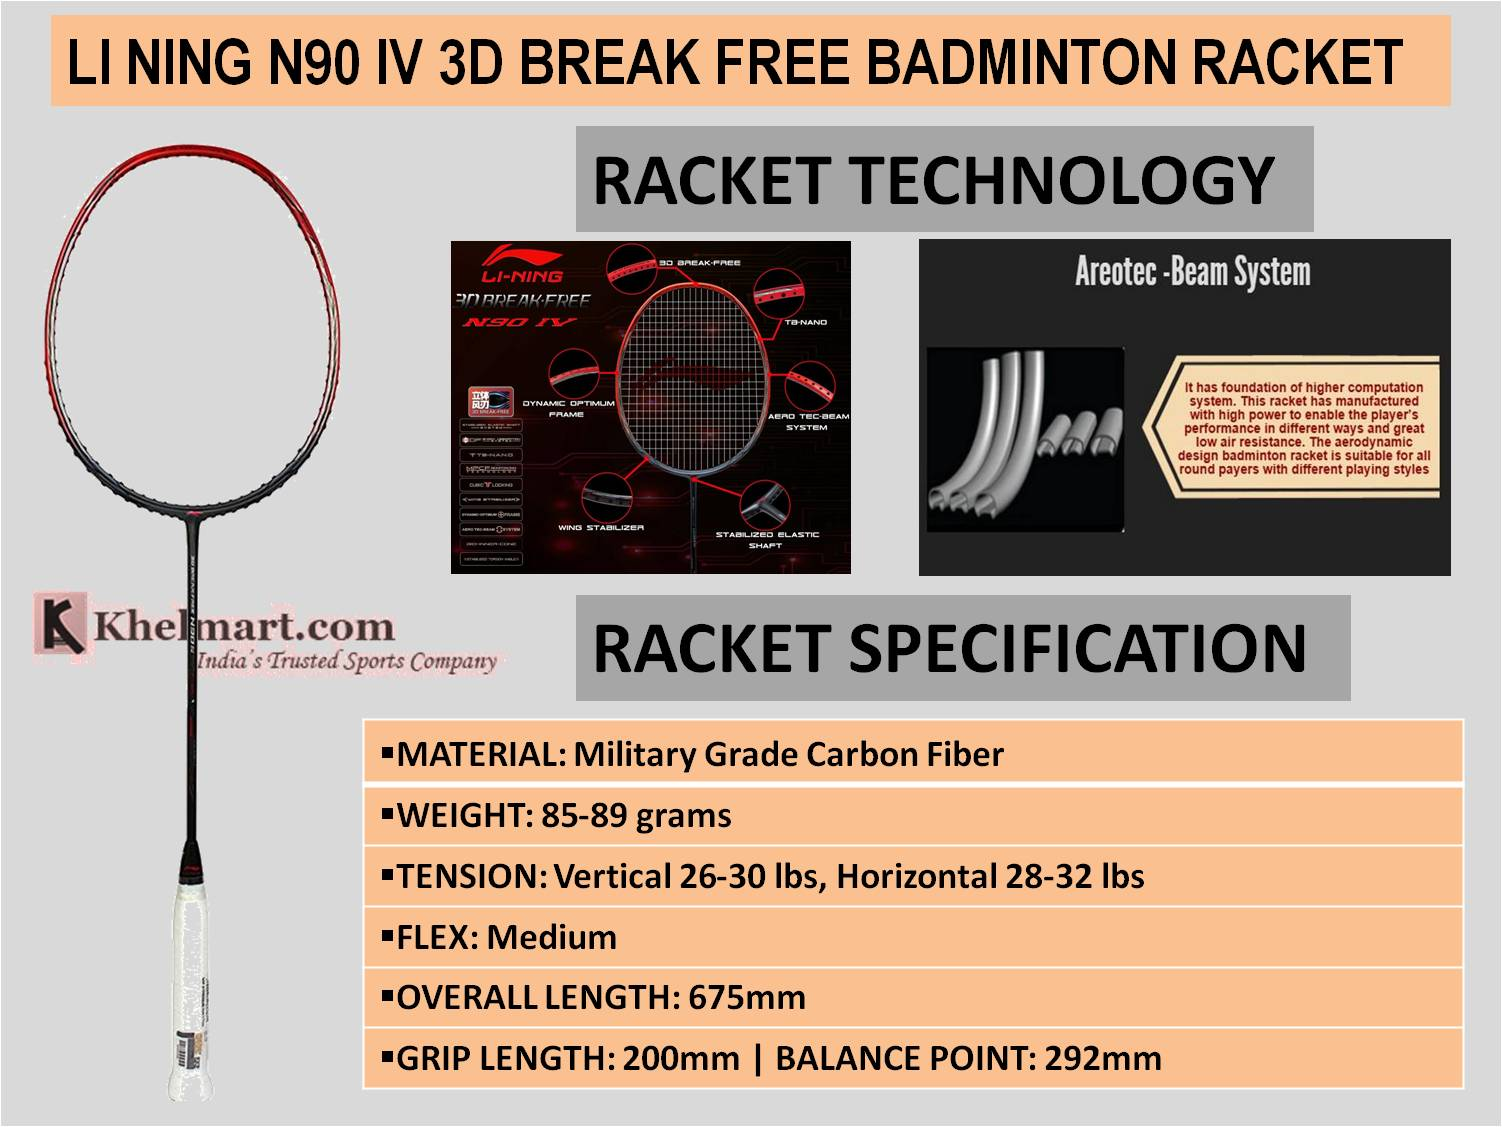 LI NING N90 IV 3D BREAK FREE BADMINTON RACKET.jpg